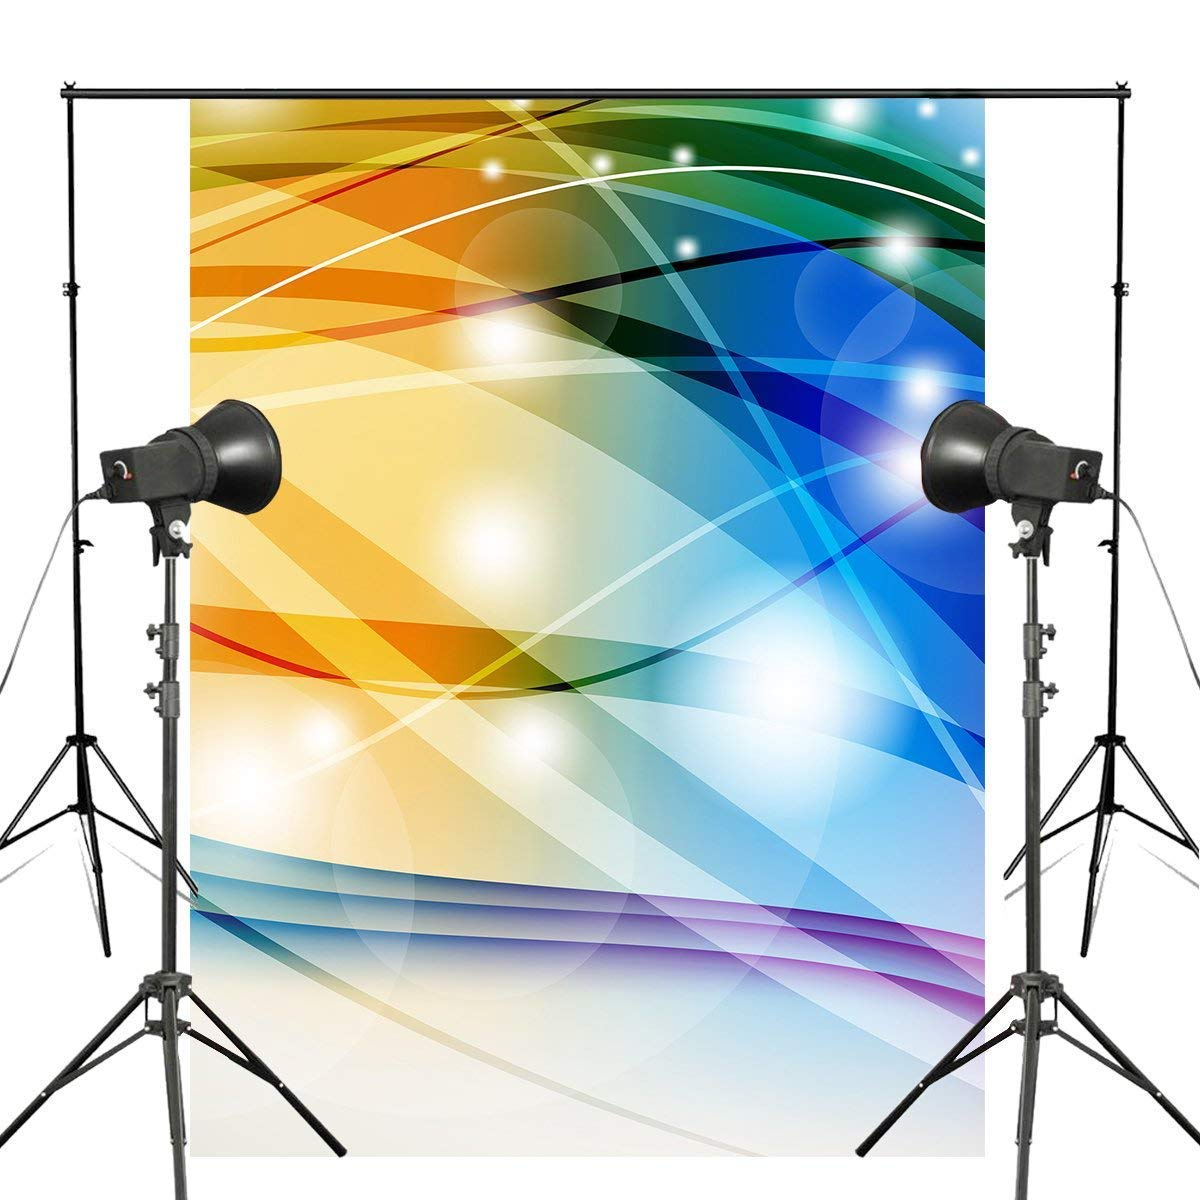 ERTIANANG 150x220cm Shining Line Photography Background Colorful Backdrops Abstract Art Photography Studio Props